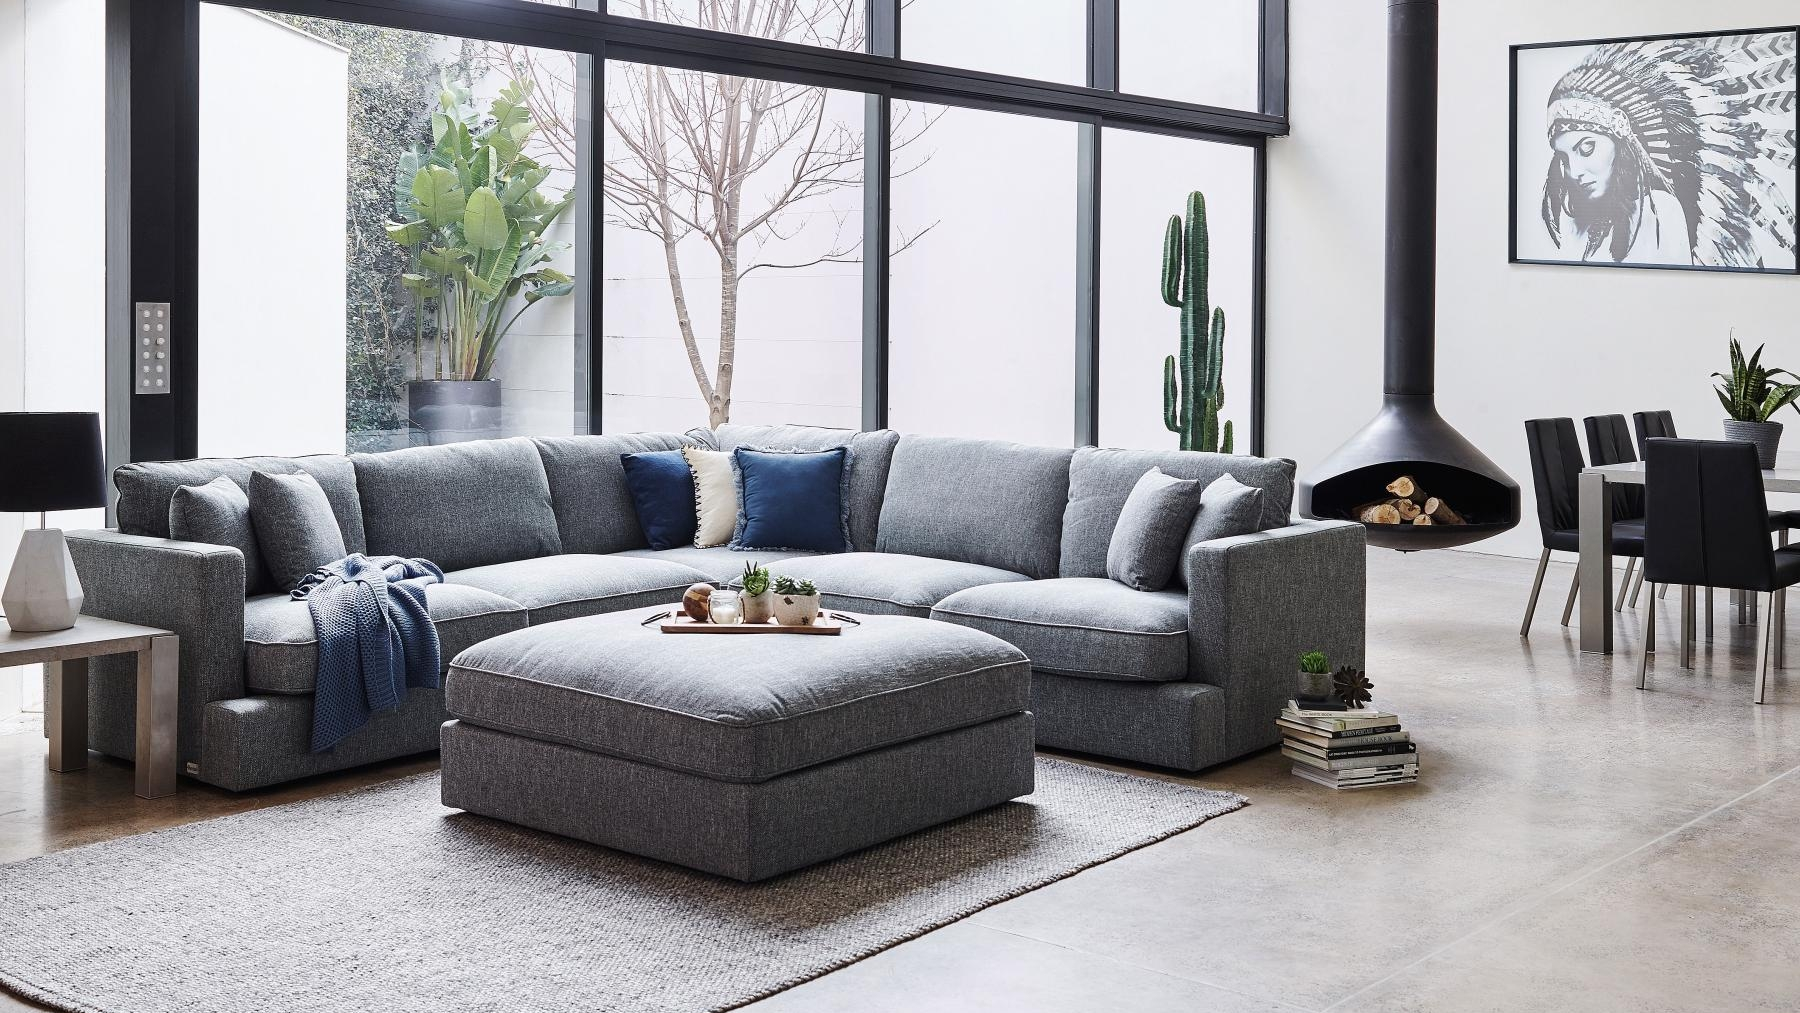 Harvey Norman Side Tables Buy Salta Fabric Modular Sofa Harvey Norman Au